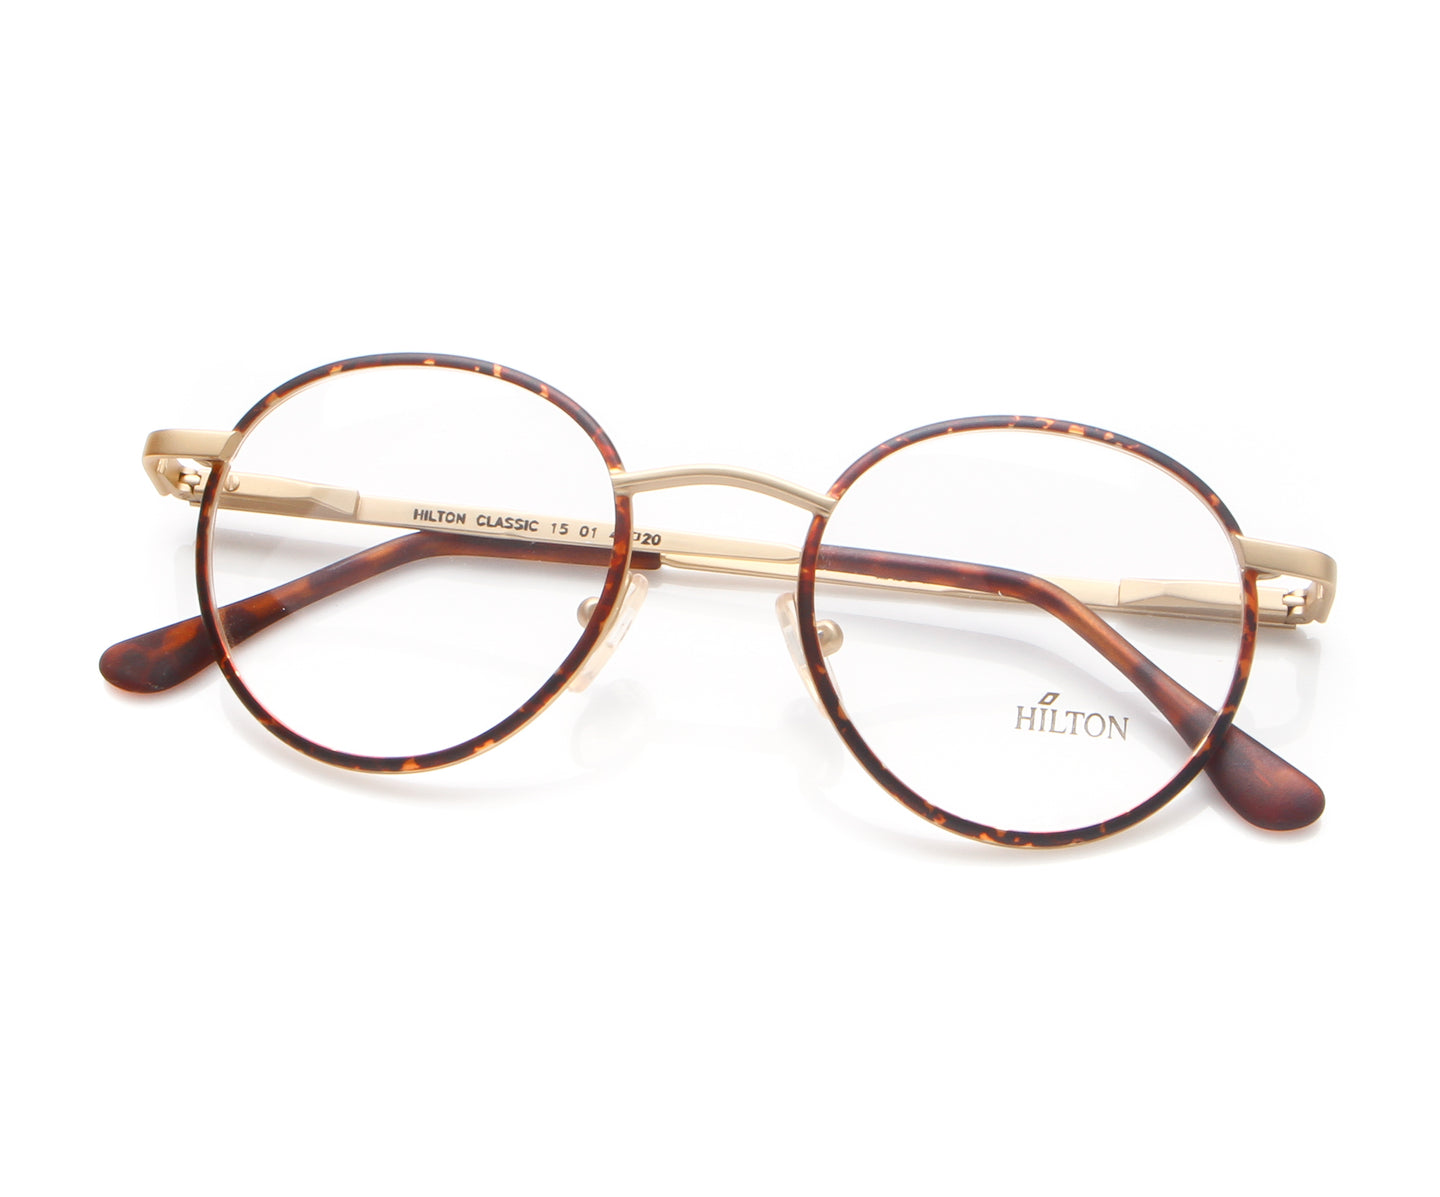 Vintage Hilton Classic 15 01 Thumb, Hilton , glasses frames, eyeglasses online, eyeglass frames, mens glasses, womens glasses, buy glasses online, designer eyeglasses, vintage sunglasses, retro sunglasses, vintage glasses, sunglass, eyeglass, glasses, lens, vintage frames company, vf